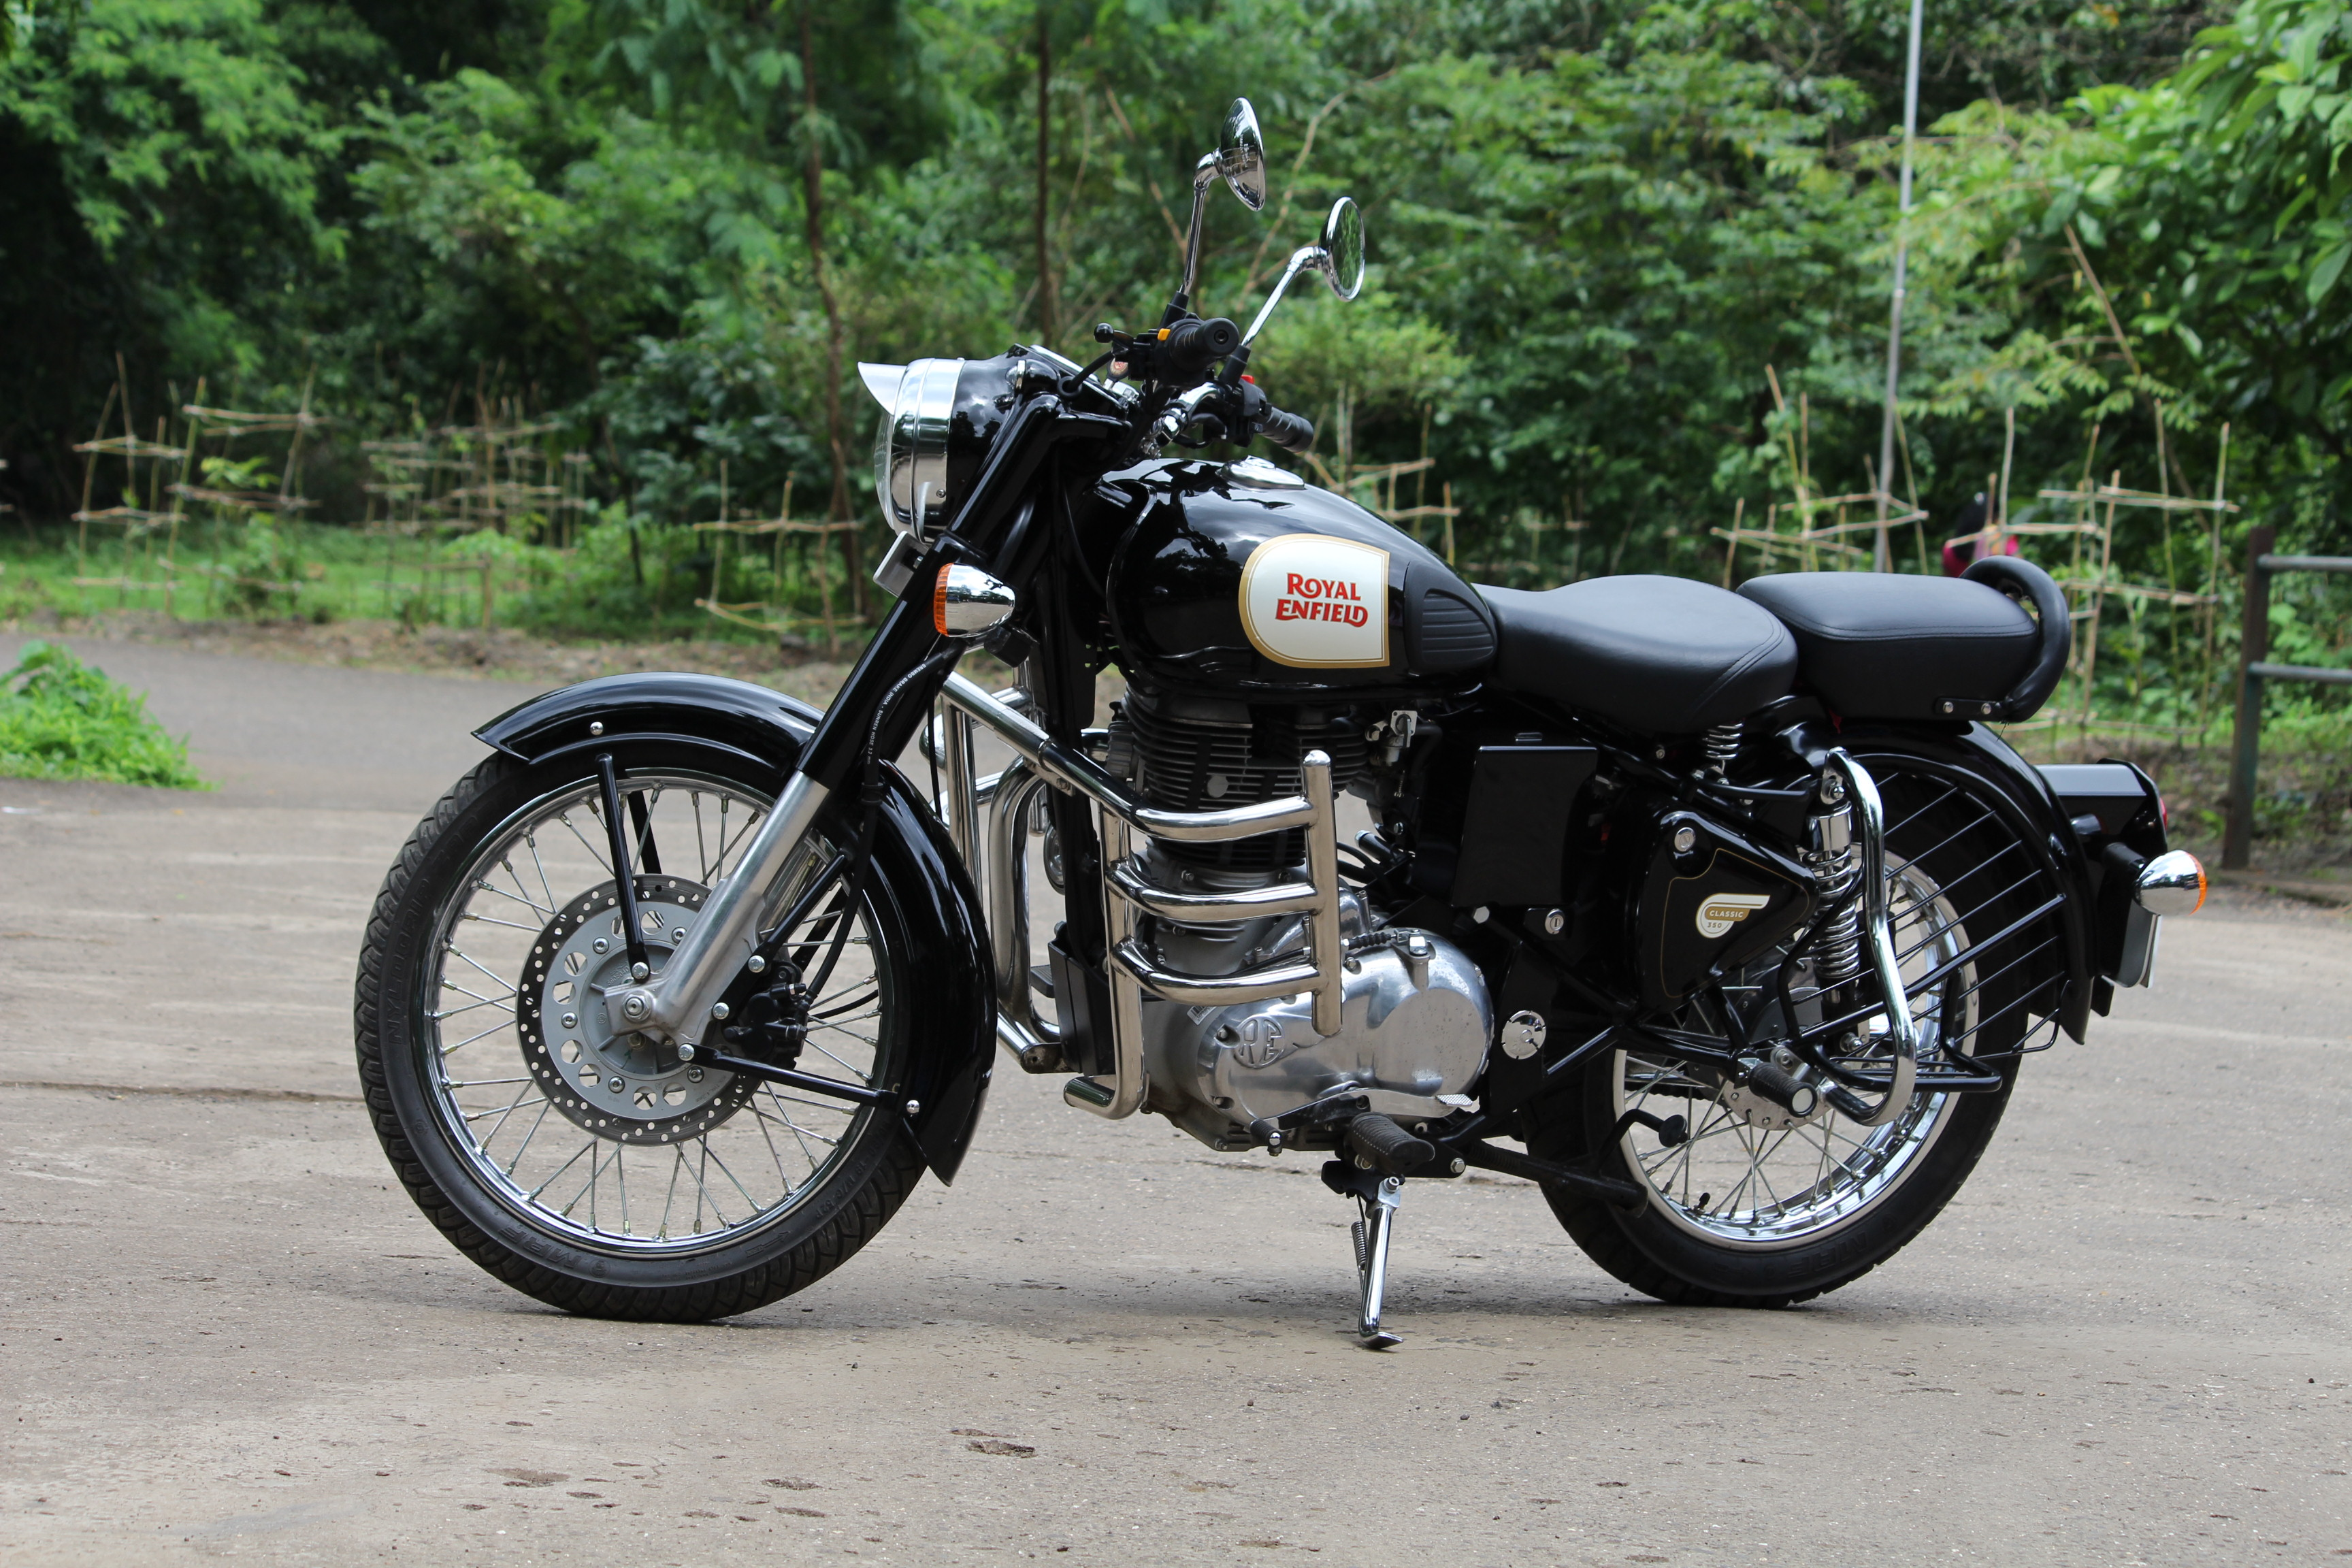 Royal enfield classic 350 photos images and wallpapers - Royal enfield classic 350 wallpaper ...